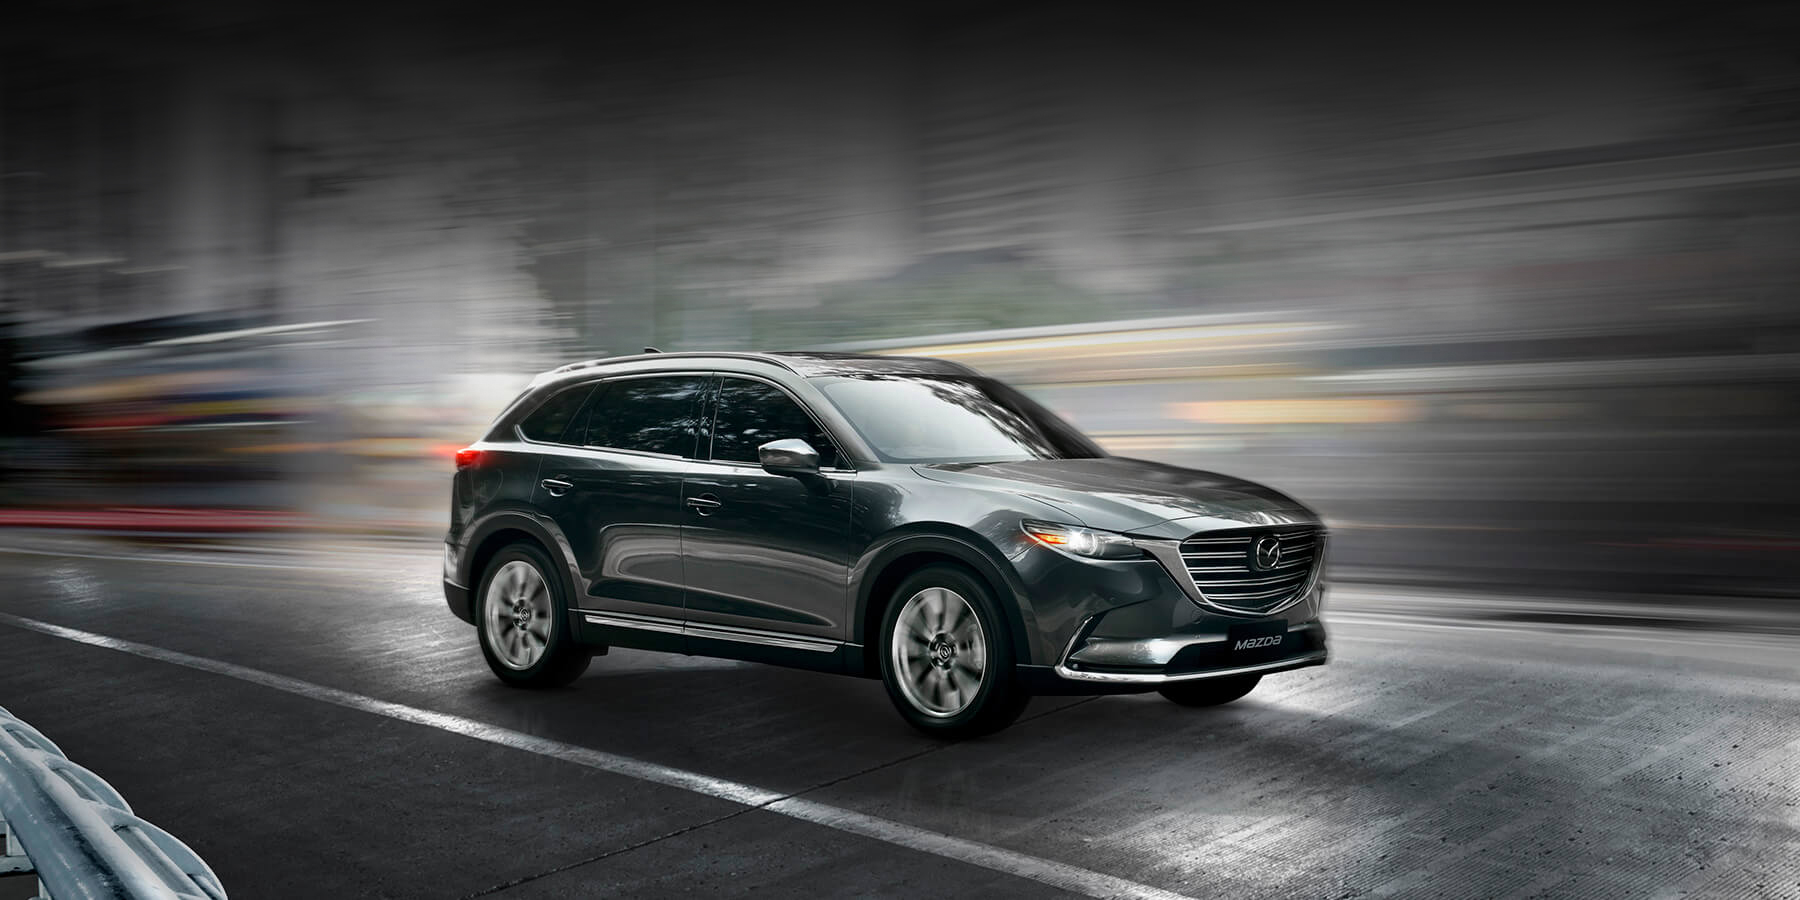 New Mazda CX-9 GT AWD 2.5L TURBO IPM